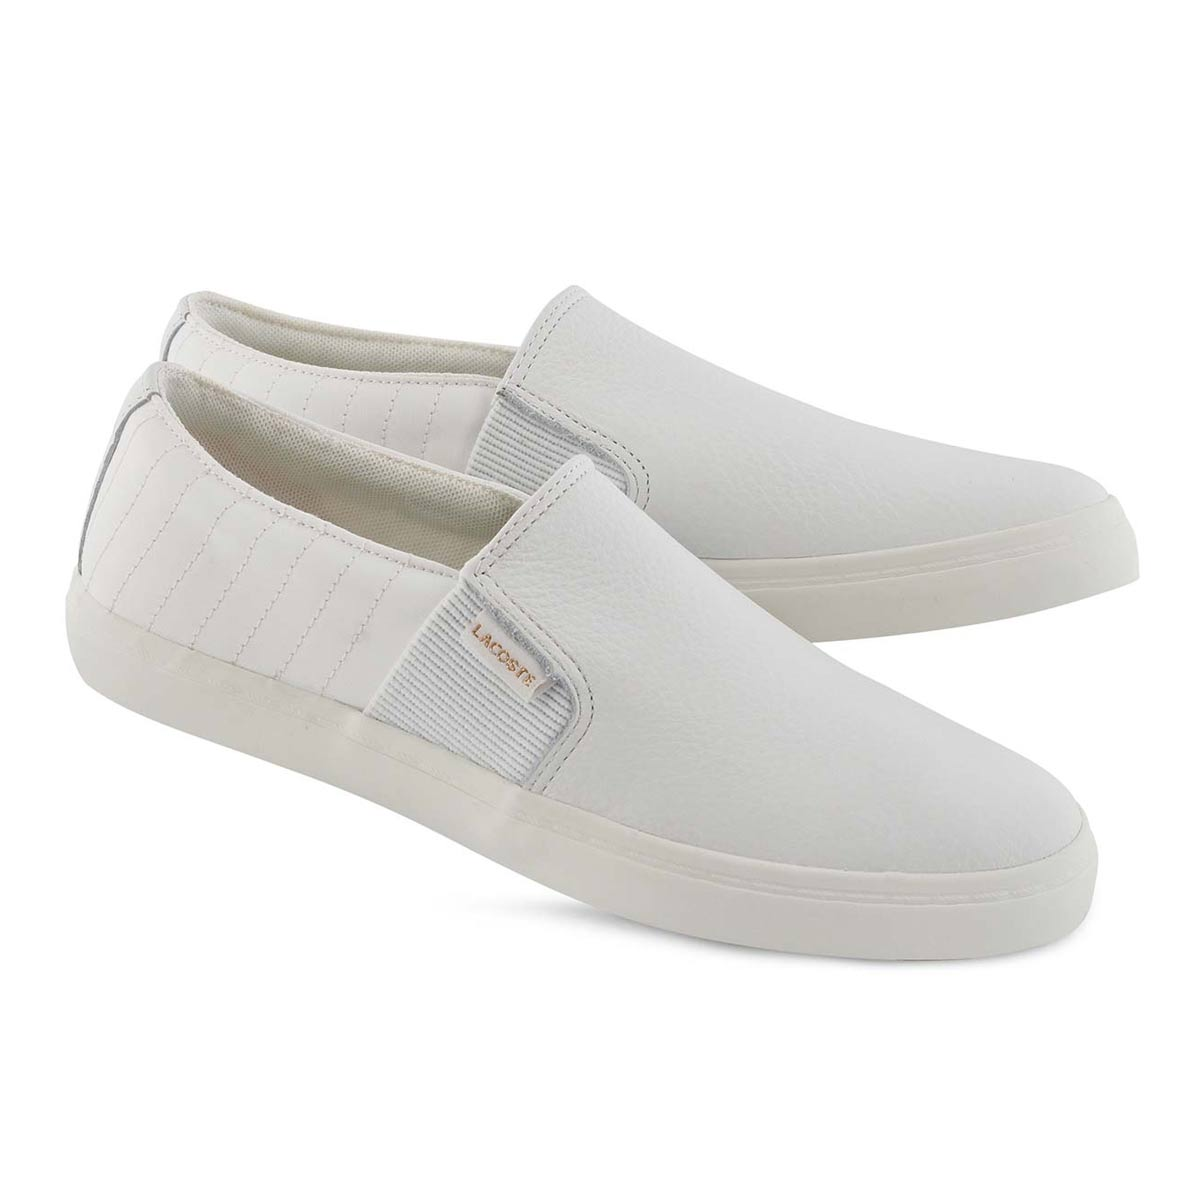 Lds Gazon 2.0 319 2 wht slip on sneaker